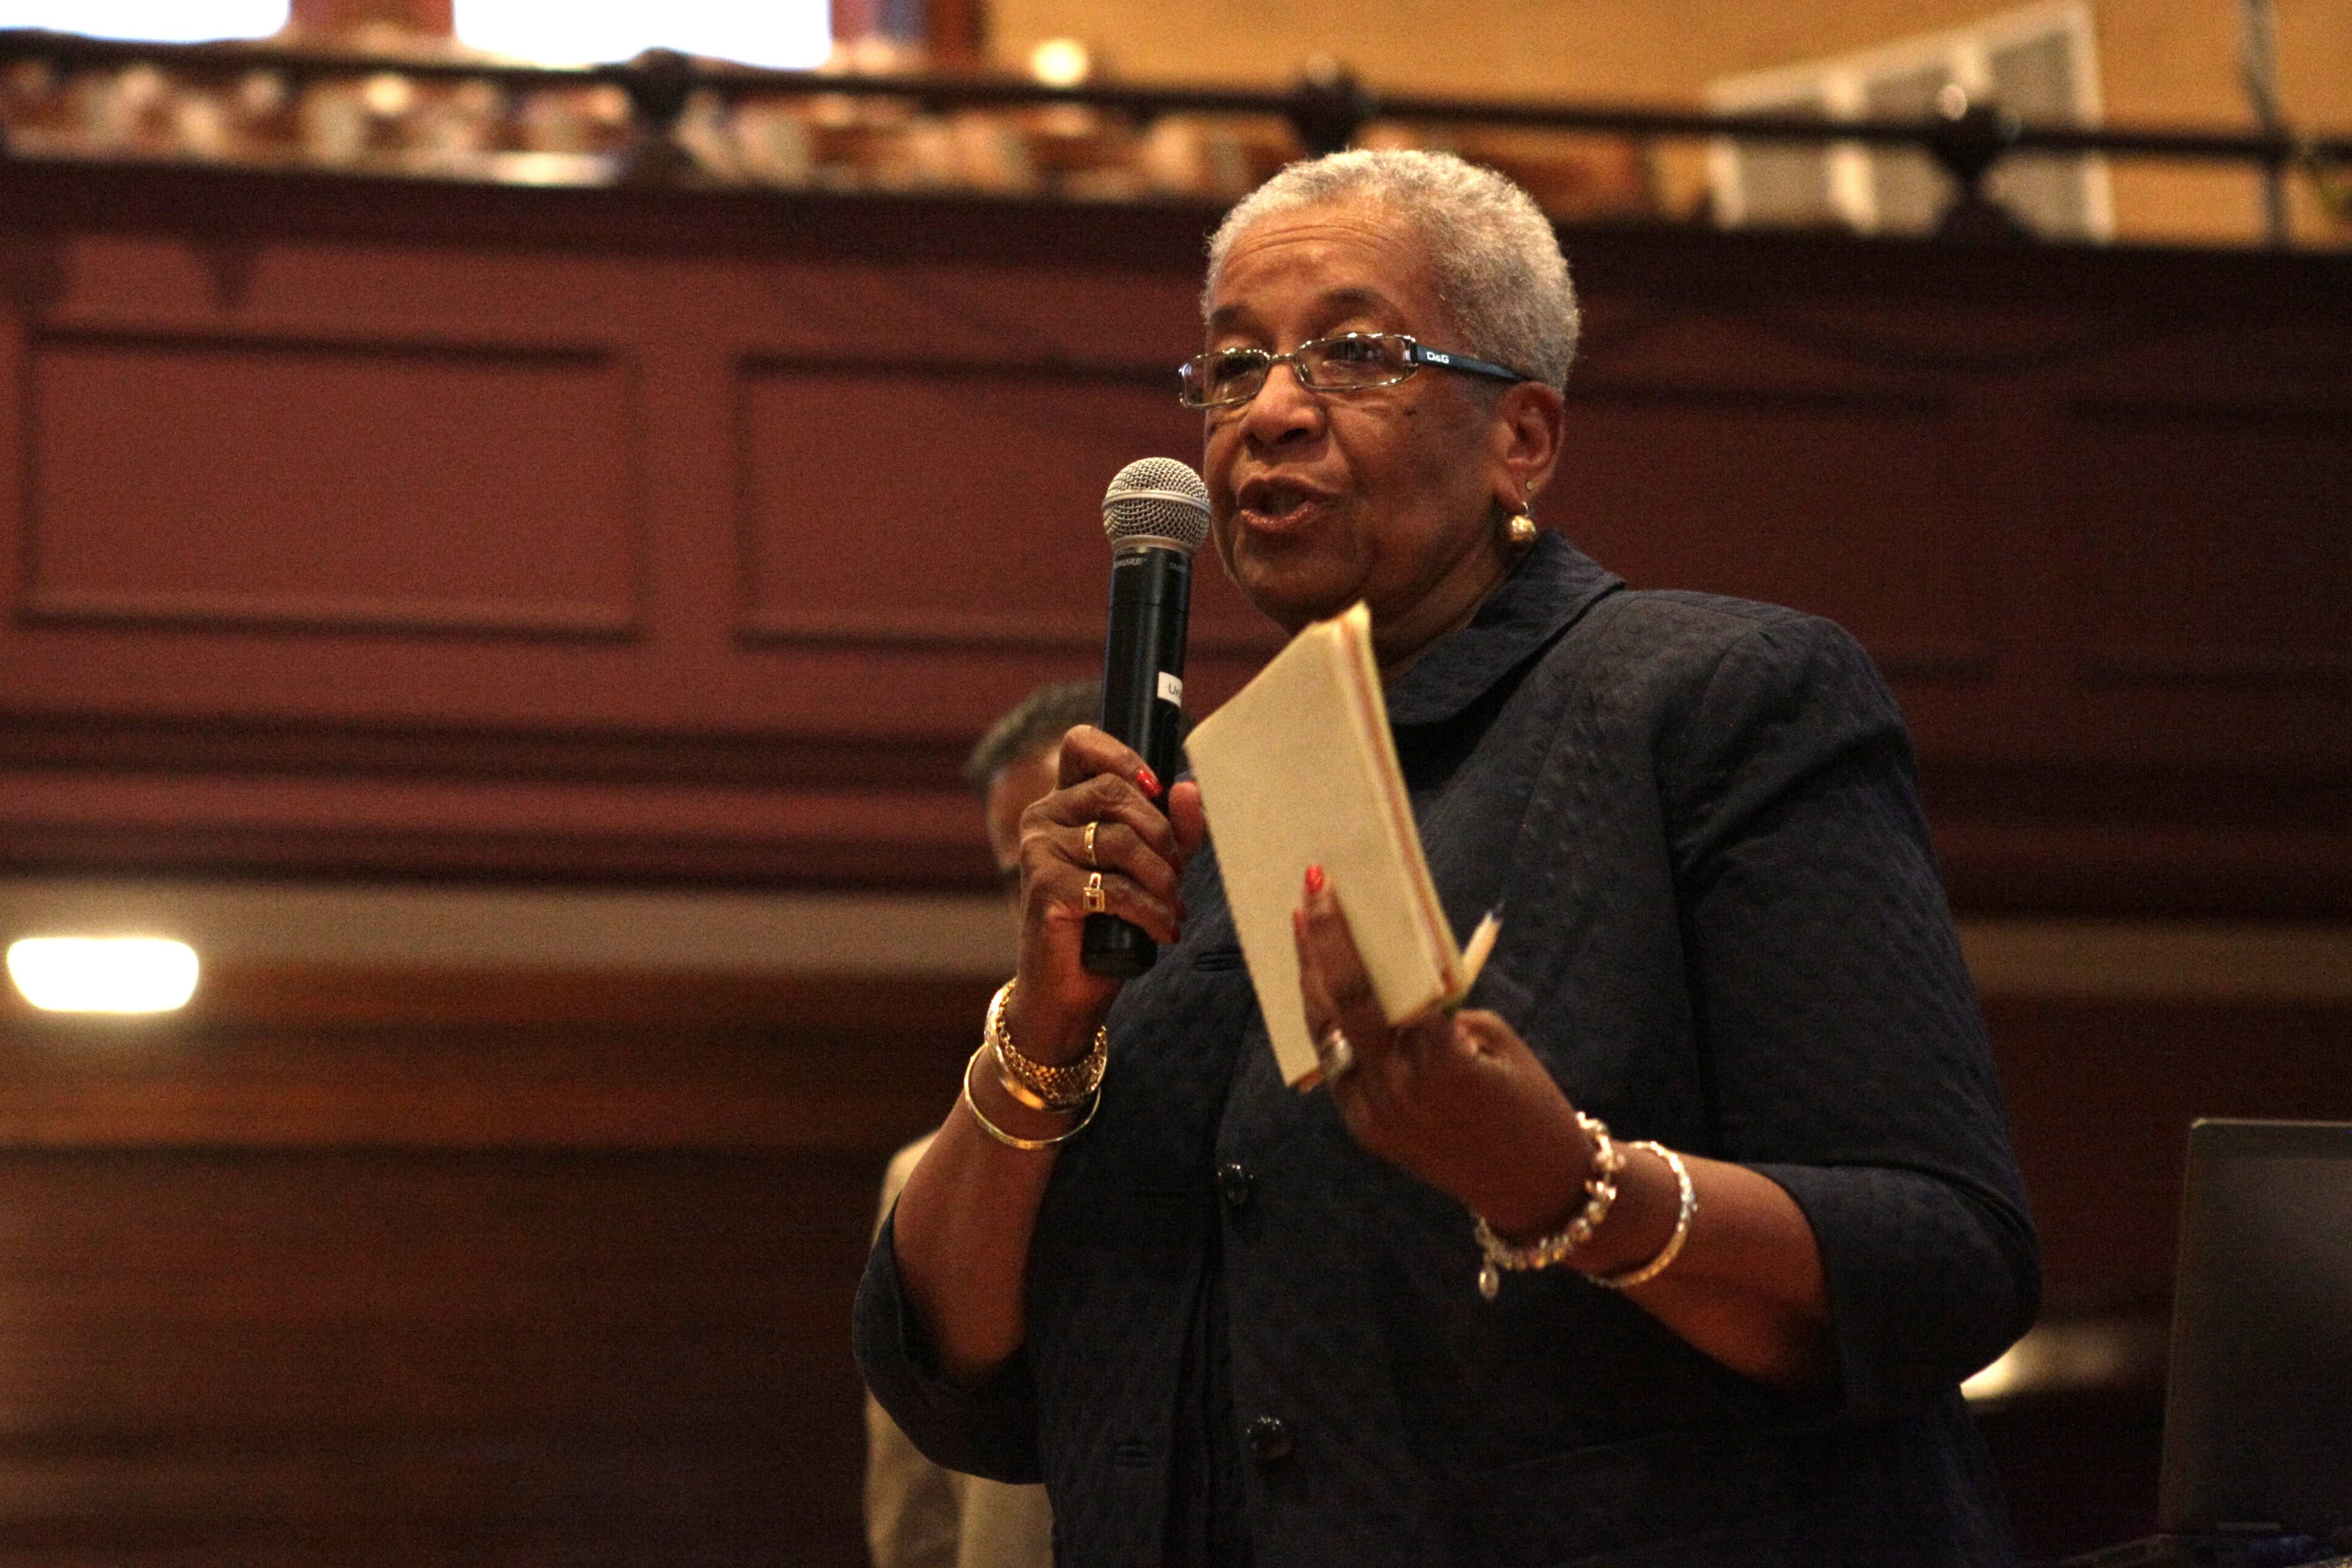 Buffalo School Board President Barbara Seals Nevergold has submitted a letter seeking Common Council's approval for raises.